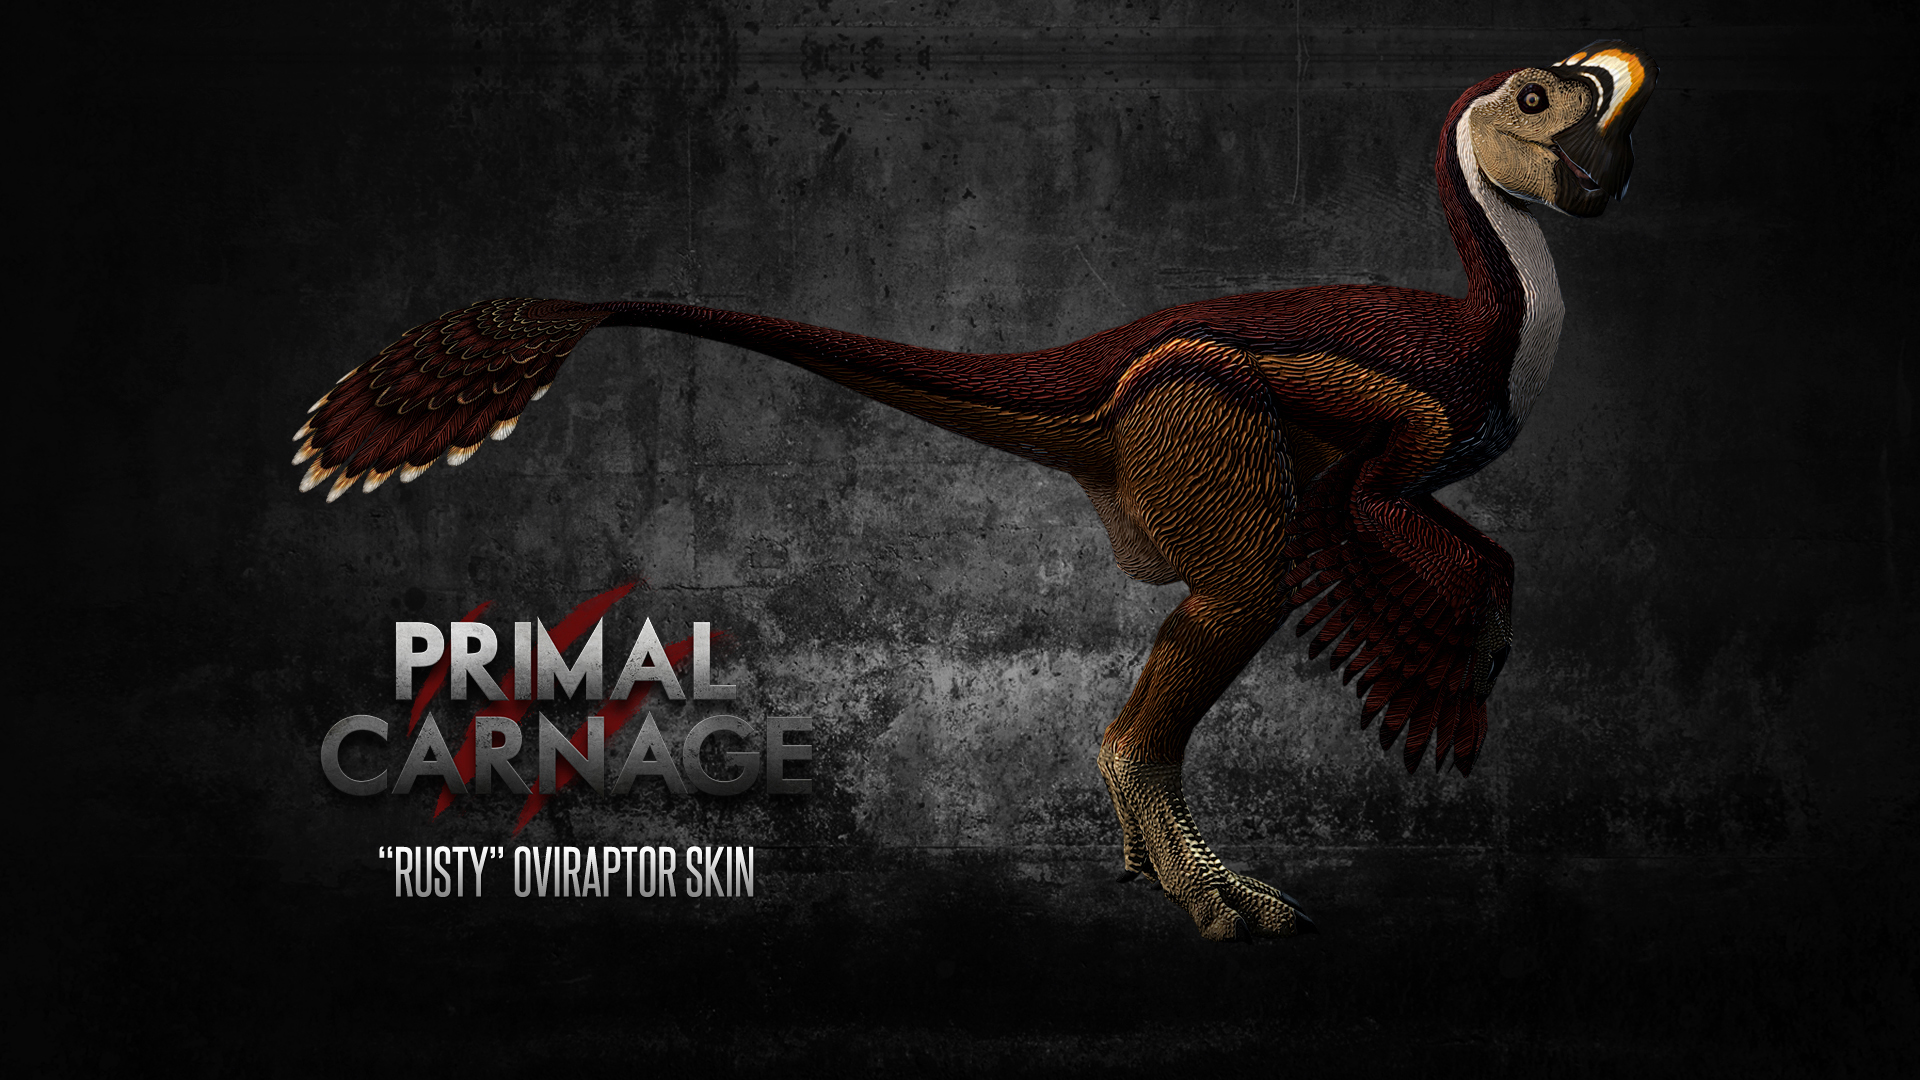 Steam Community :: Guide :: The Oviraptor Legion's guide ...